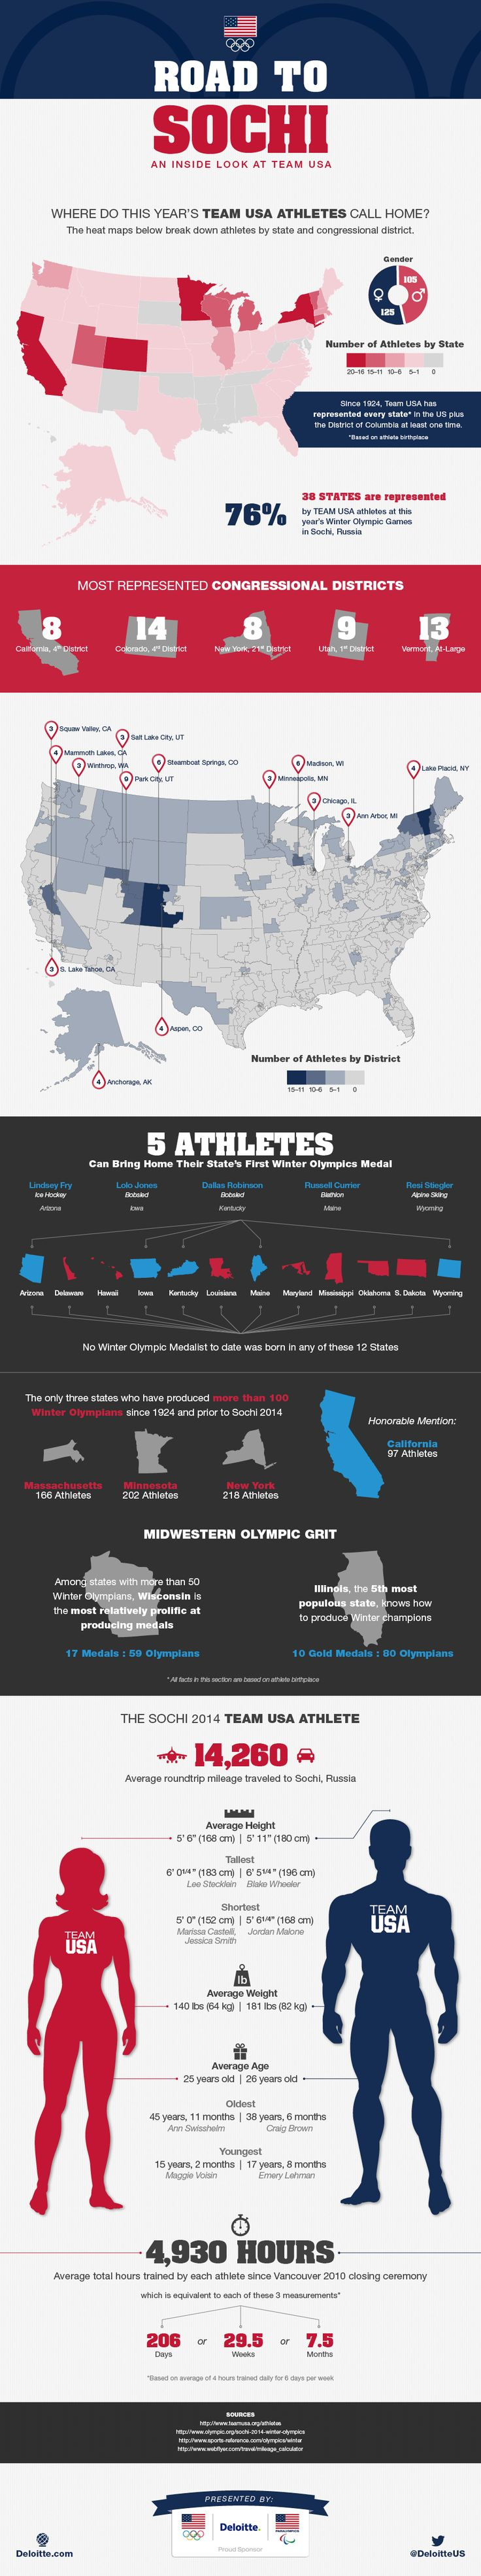 122 best infographics images on pinterest info graphics road to sochi an inside look at team usa infographic presented by deloitte fandeluxe Image collections